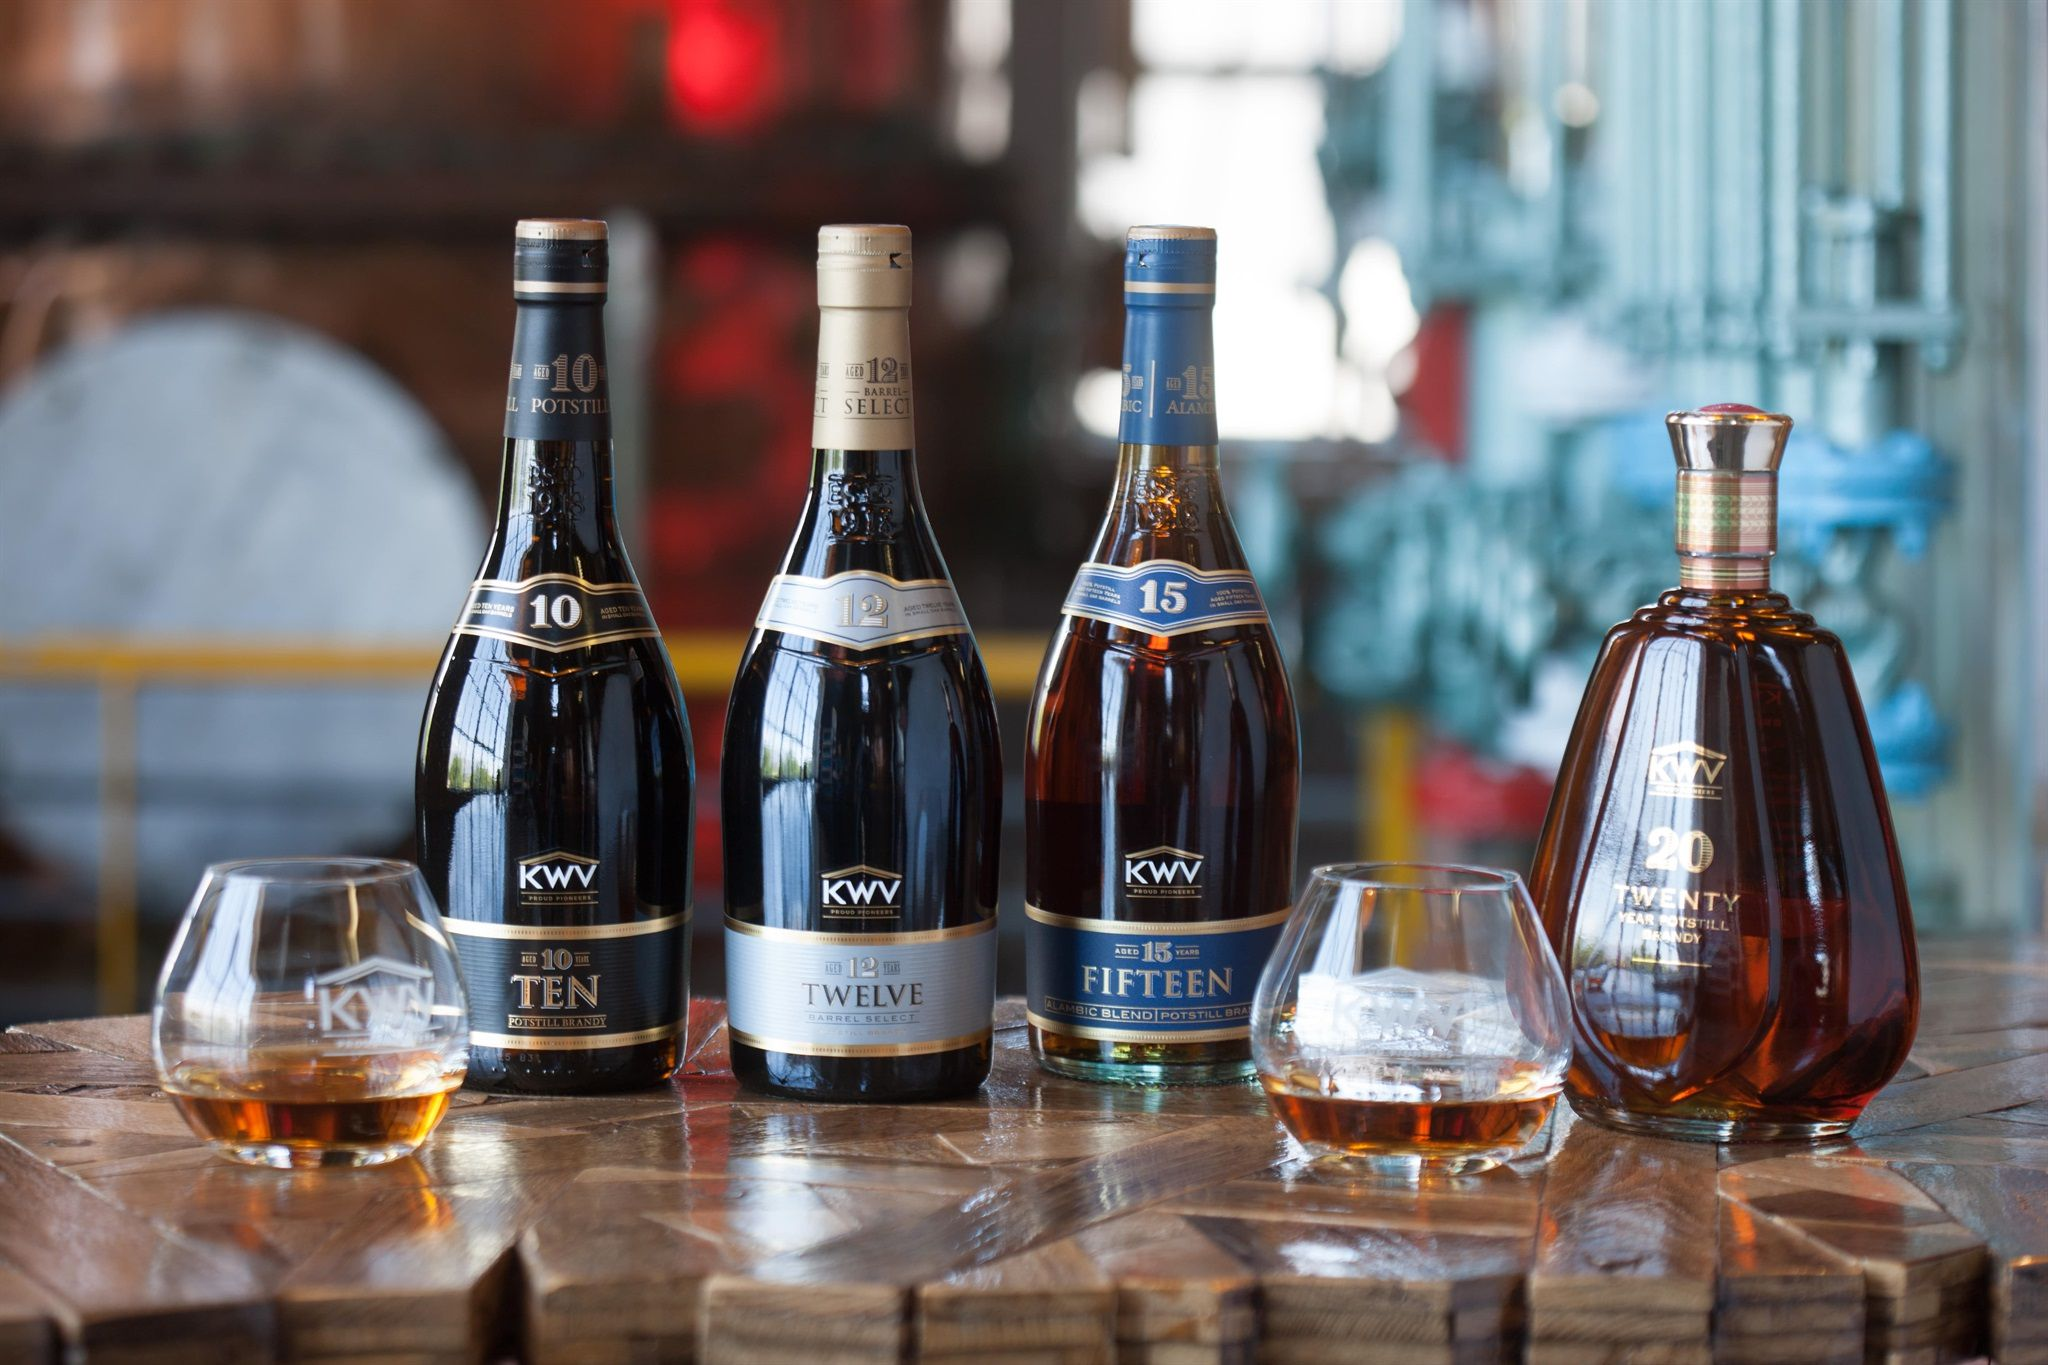 Wsa Names Kwv A World Class Distillery photo